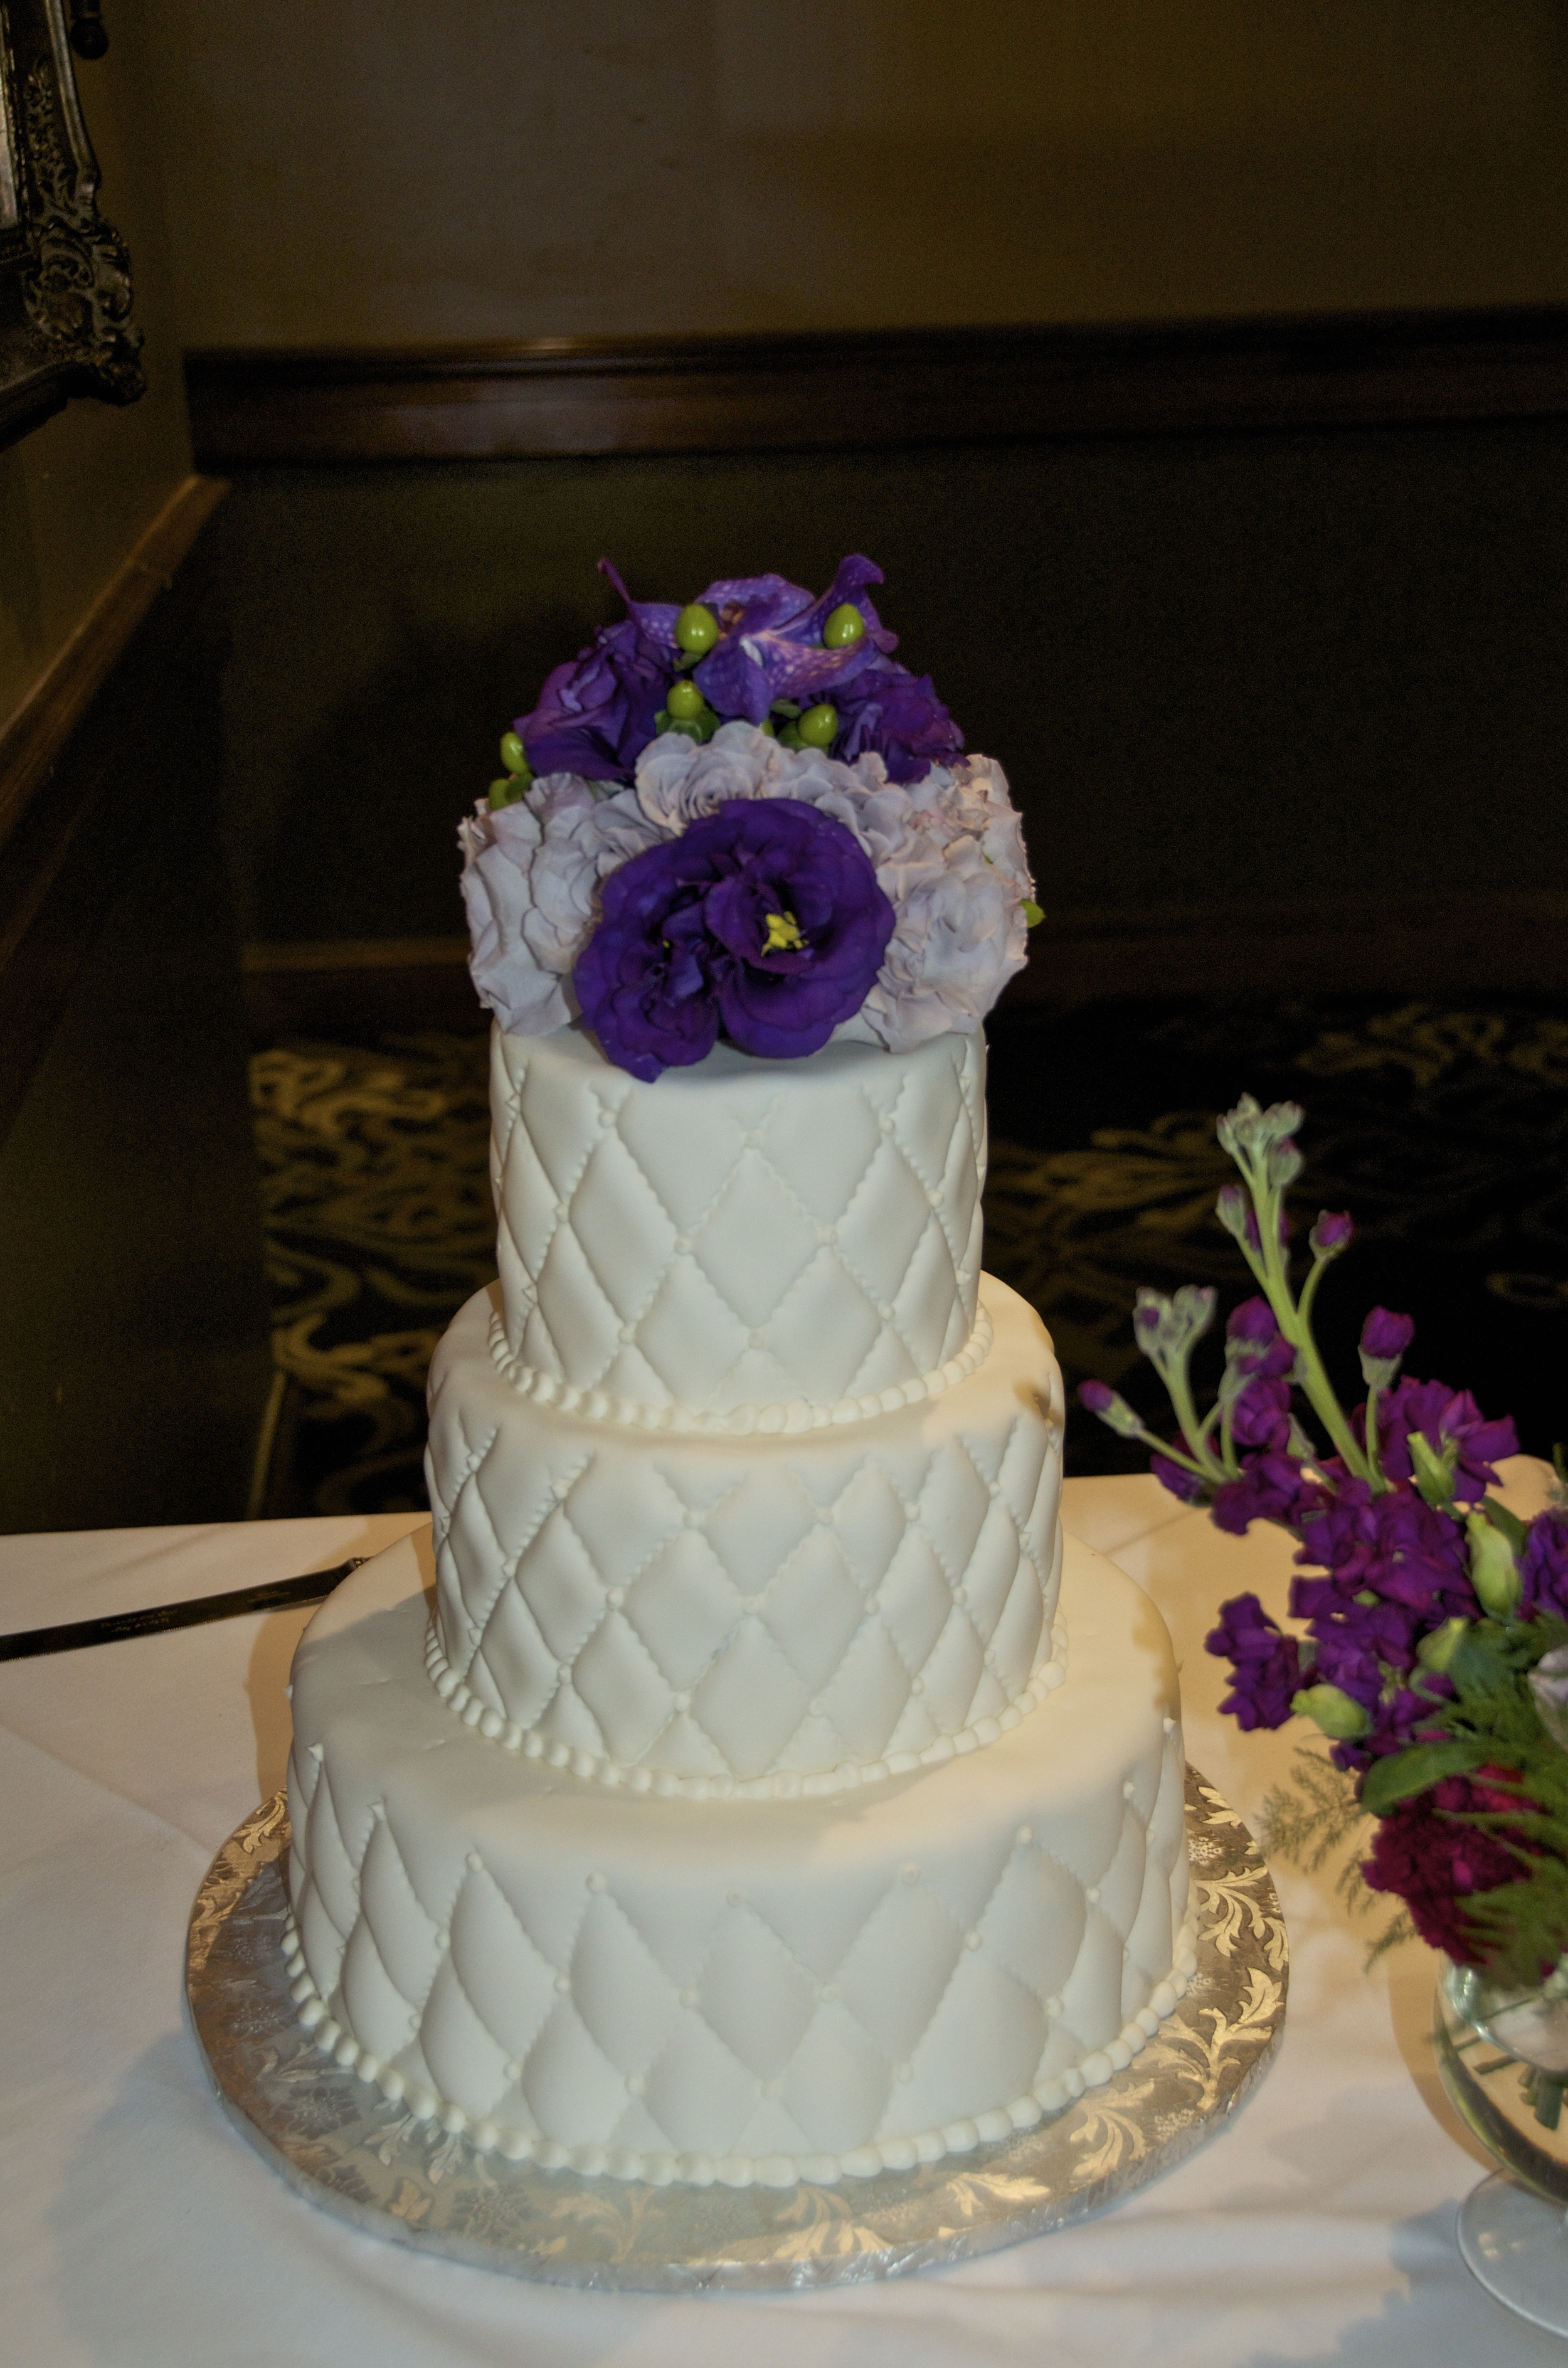 Cake topper made from fresh flowers!